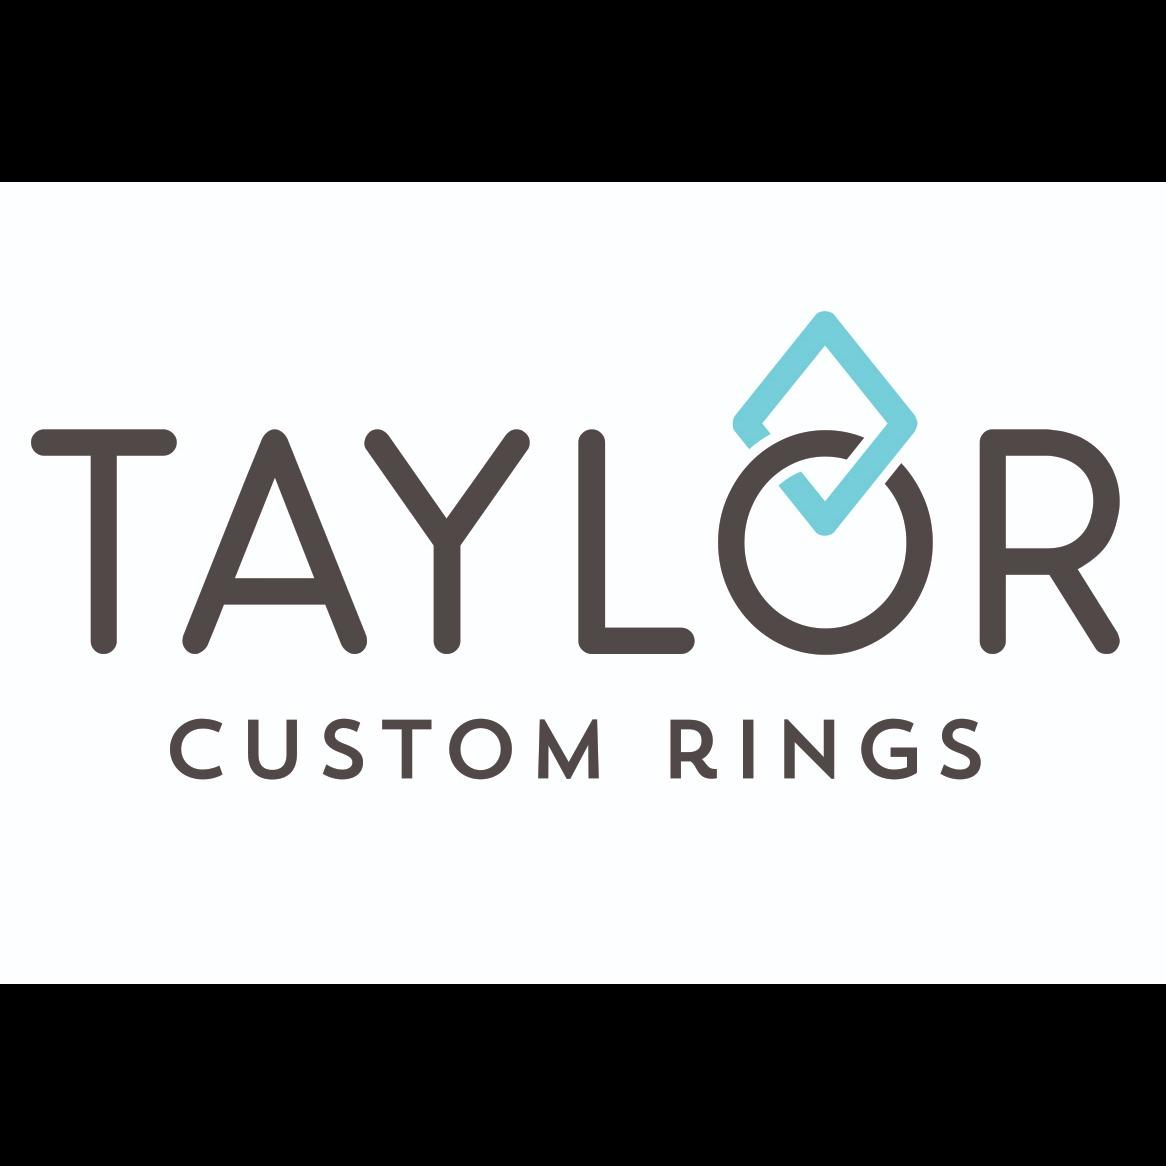 Taylor Custom Rings image 6